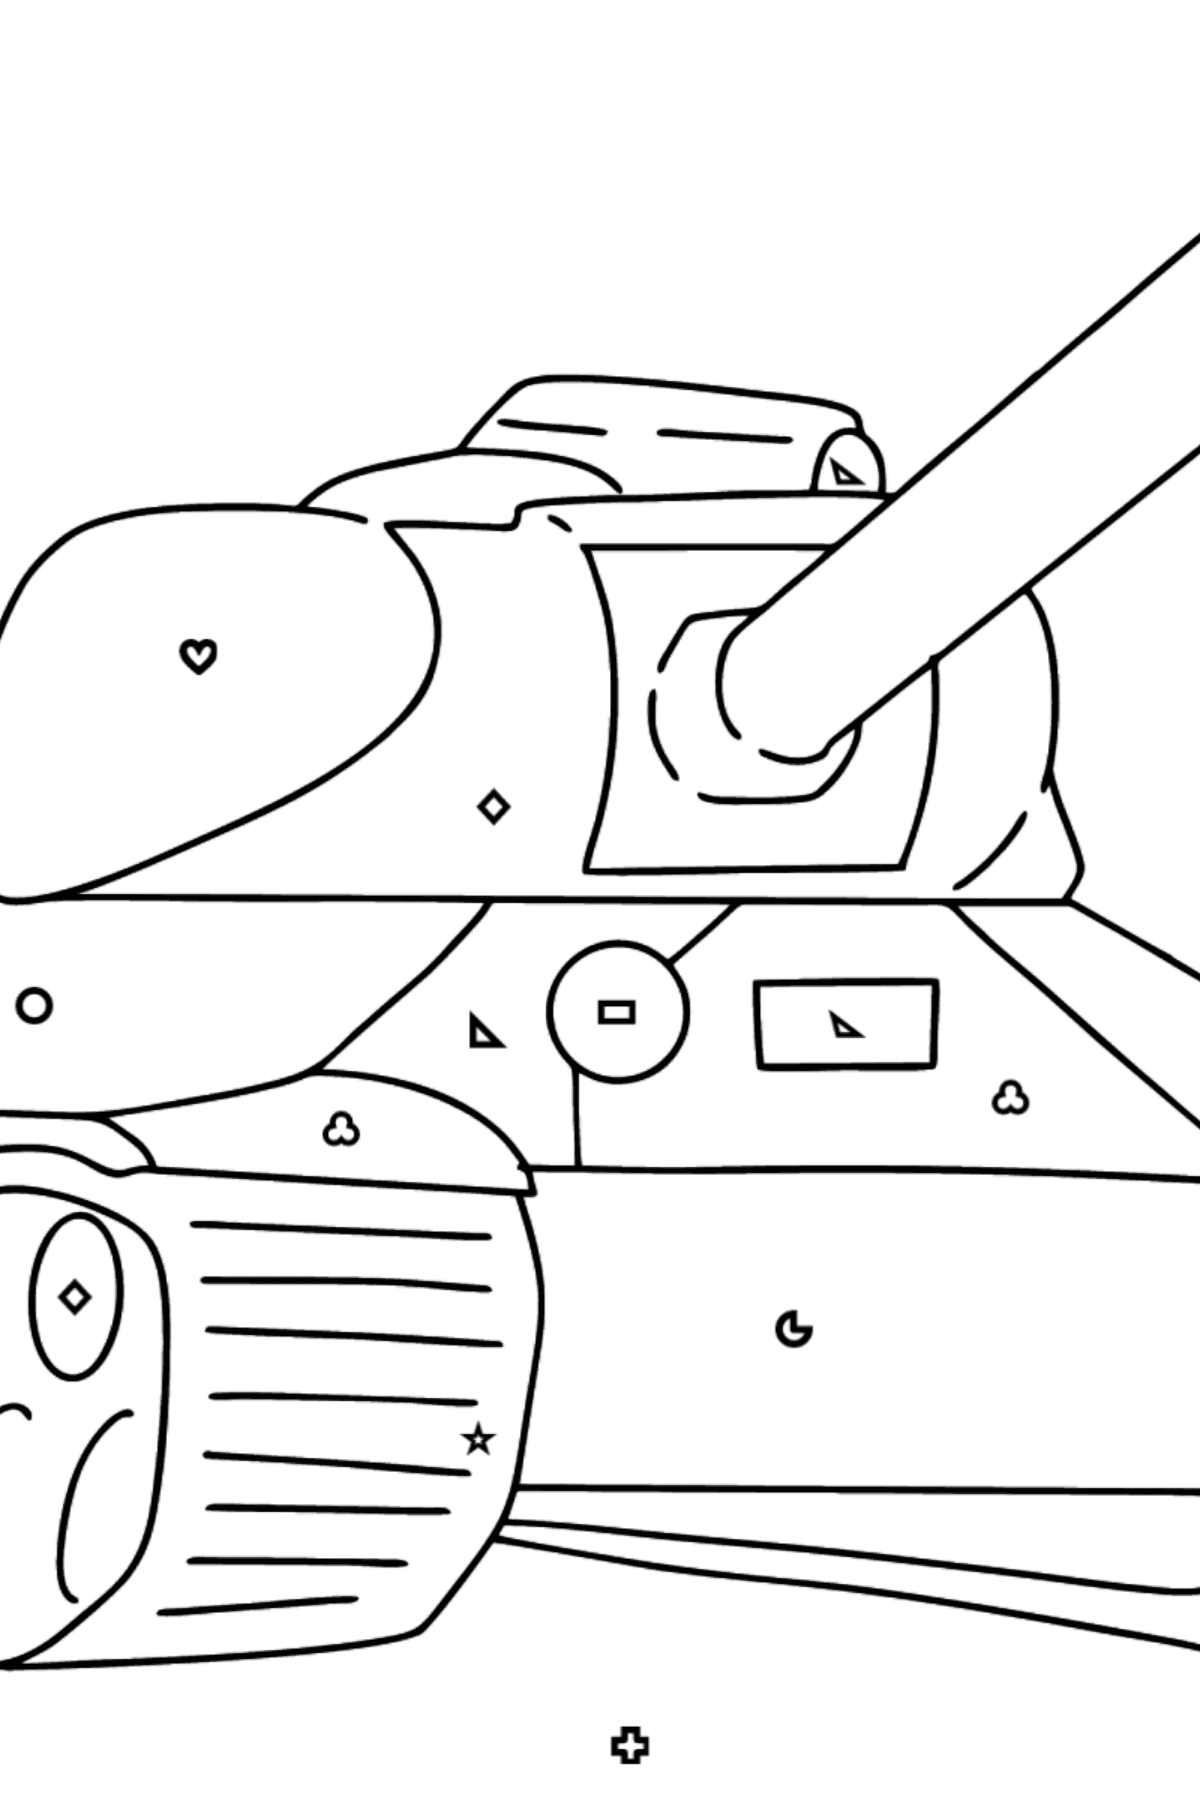 Tank IS 2 coloring page - Coloring by Geometric Shapes for Kids